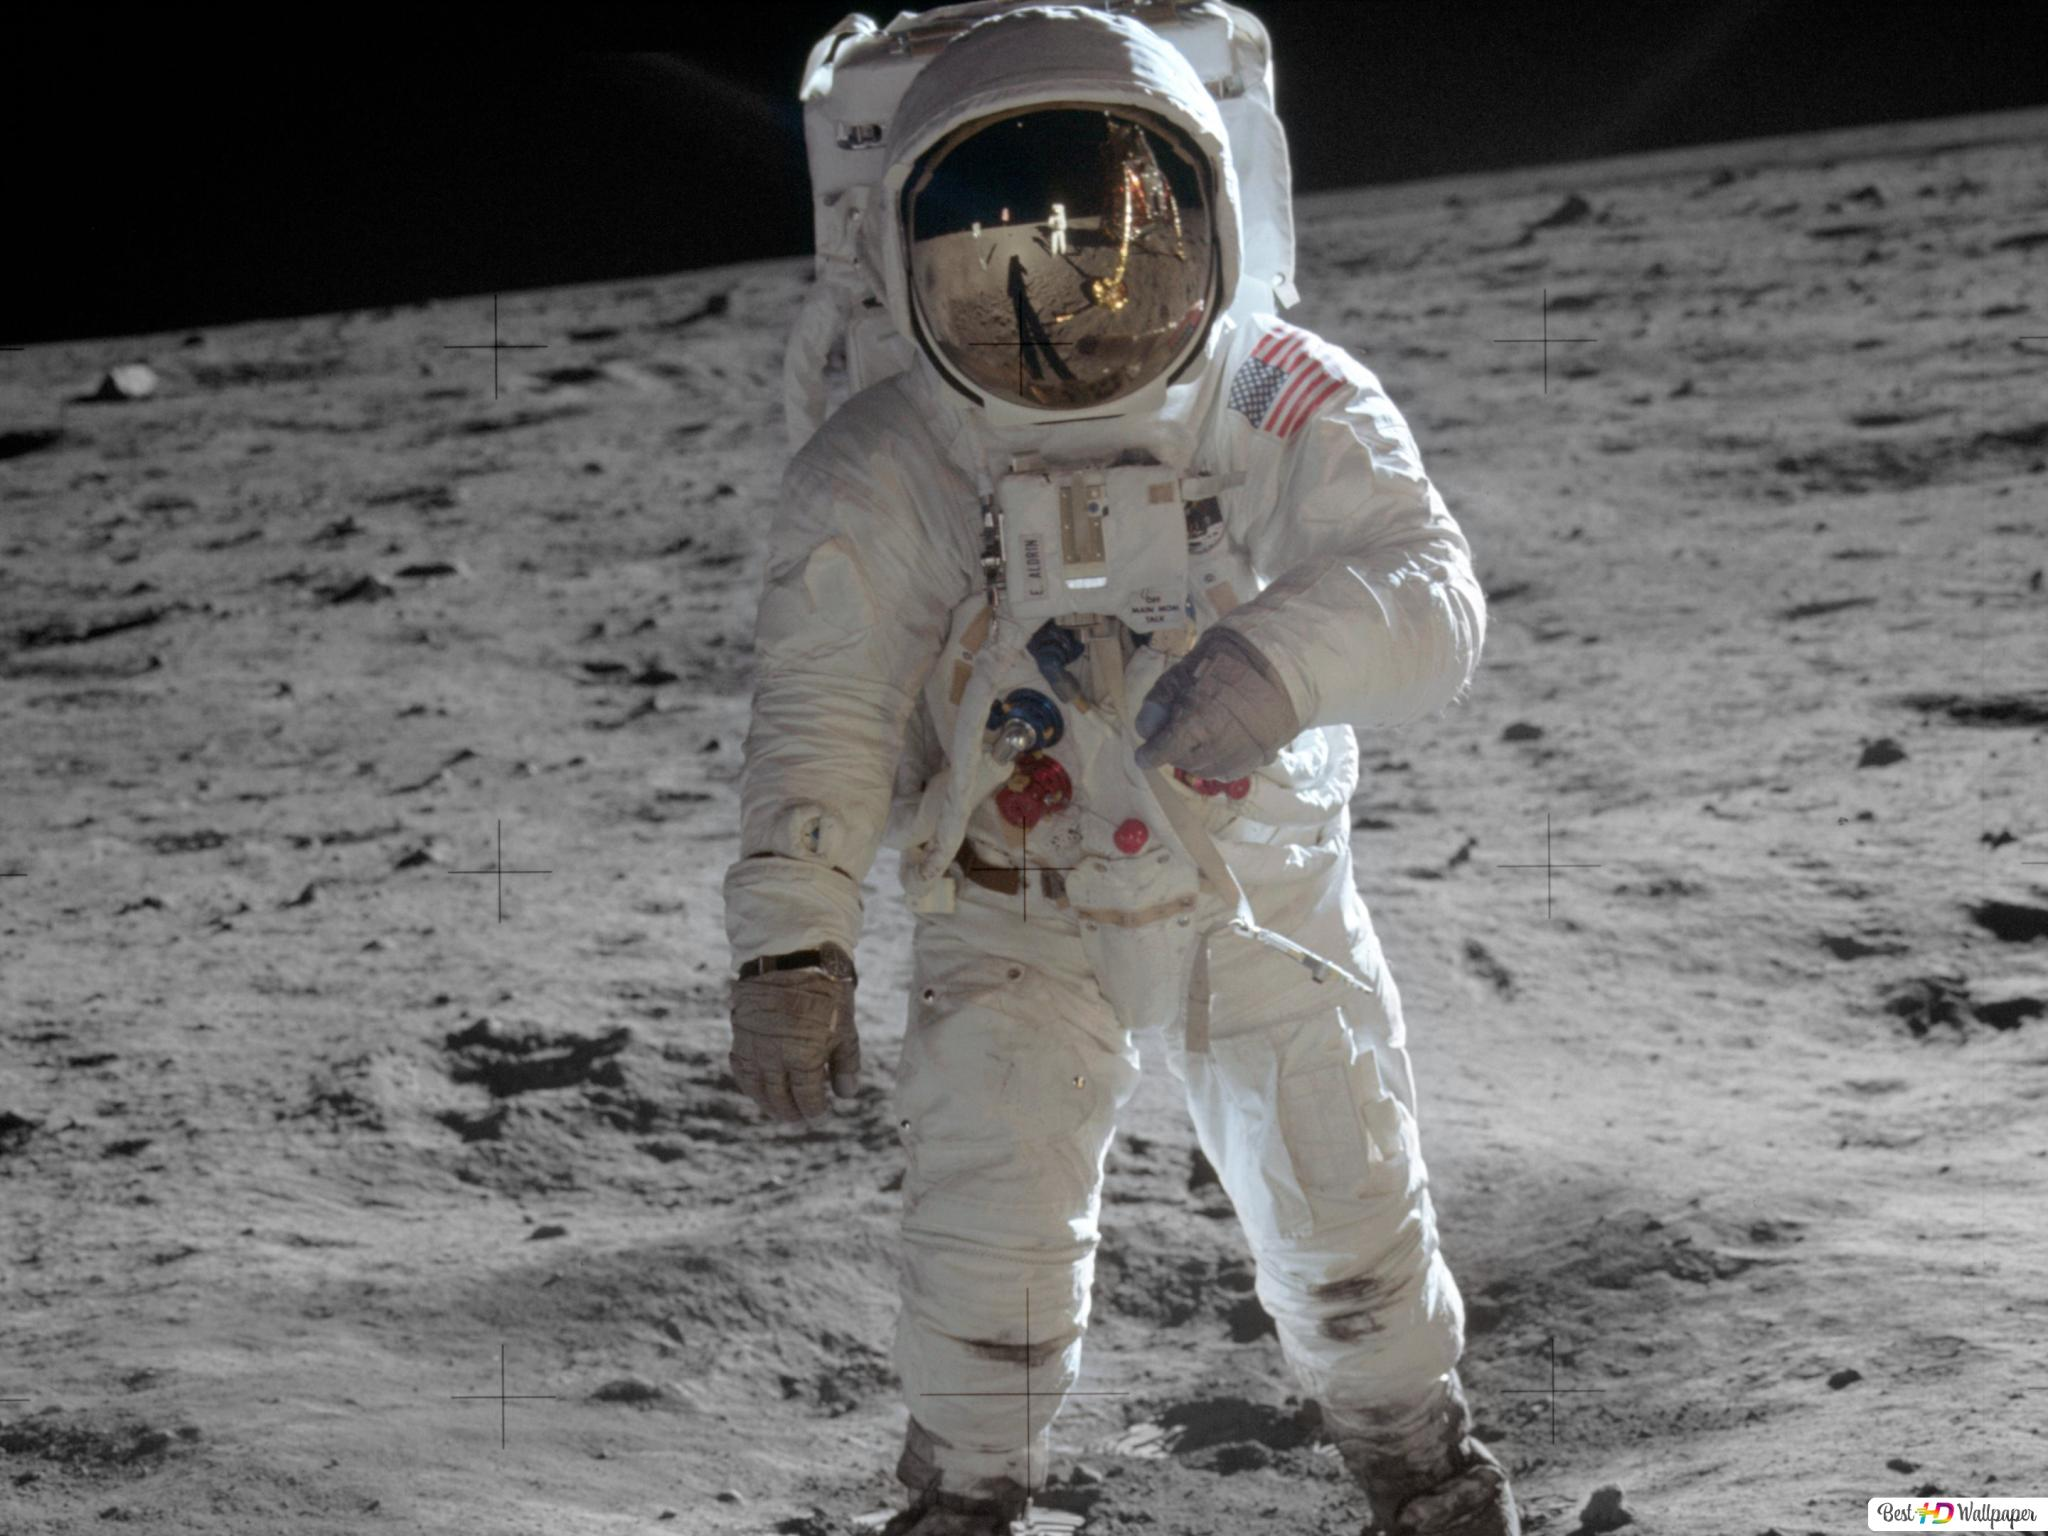 Man On The Moon Hd Wallpaper Download